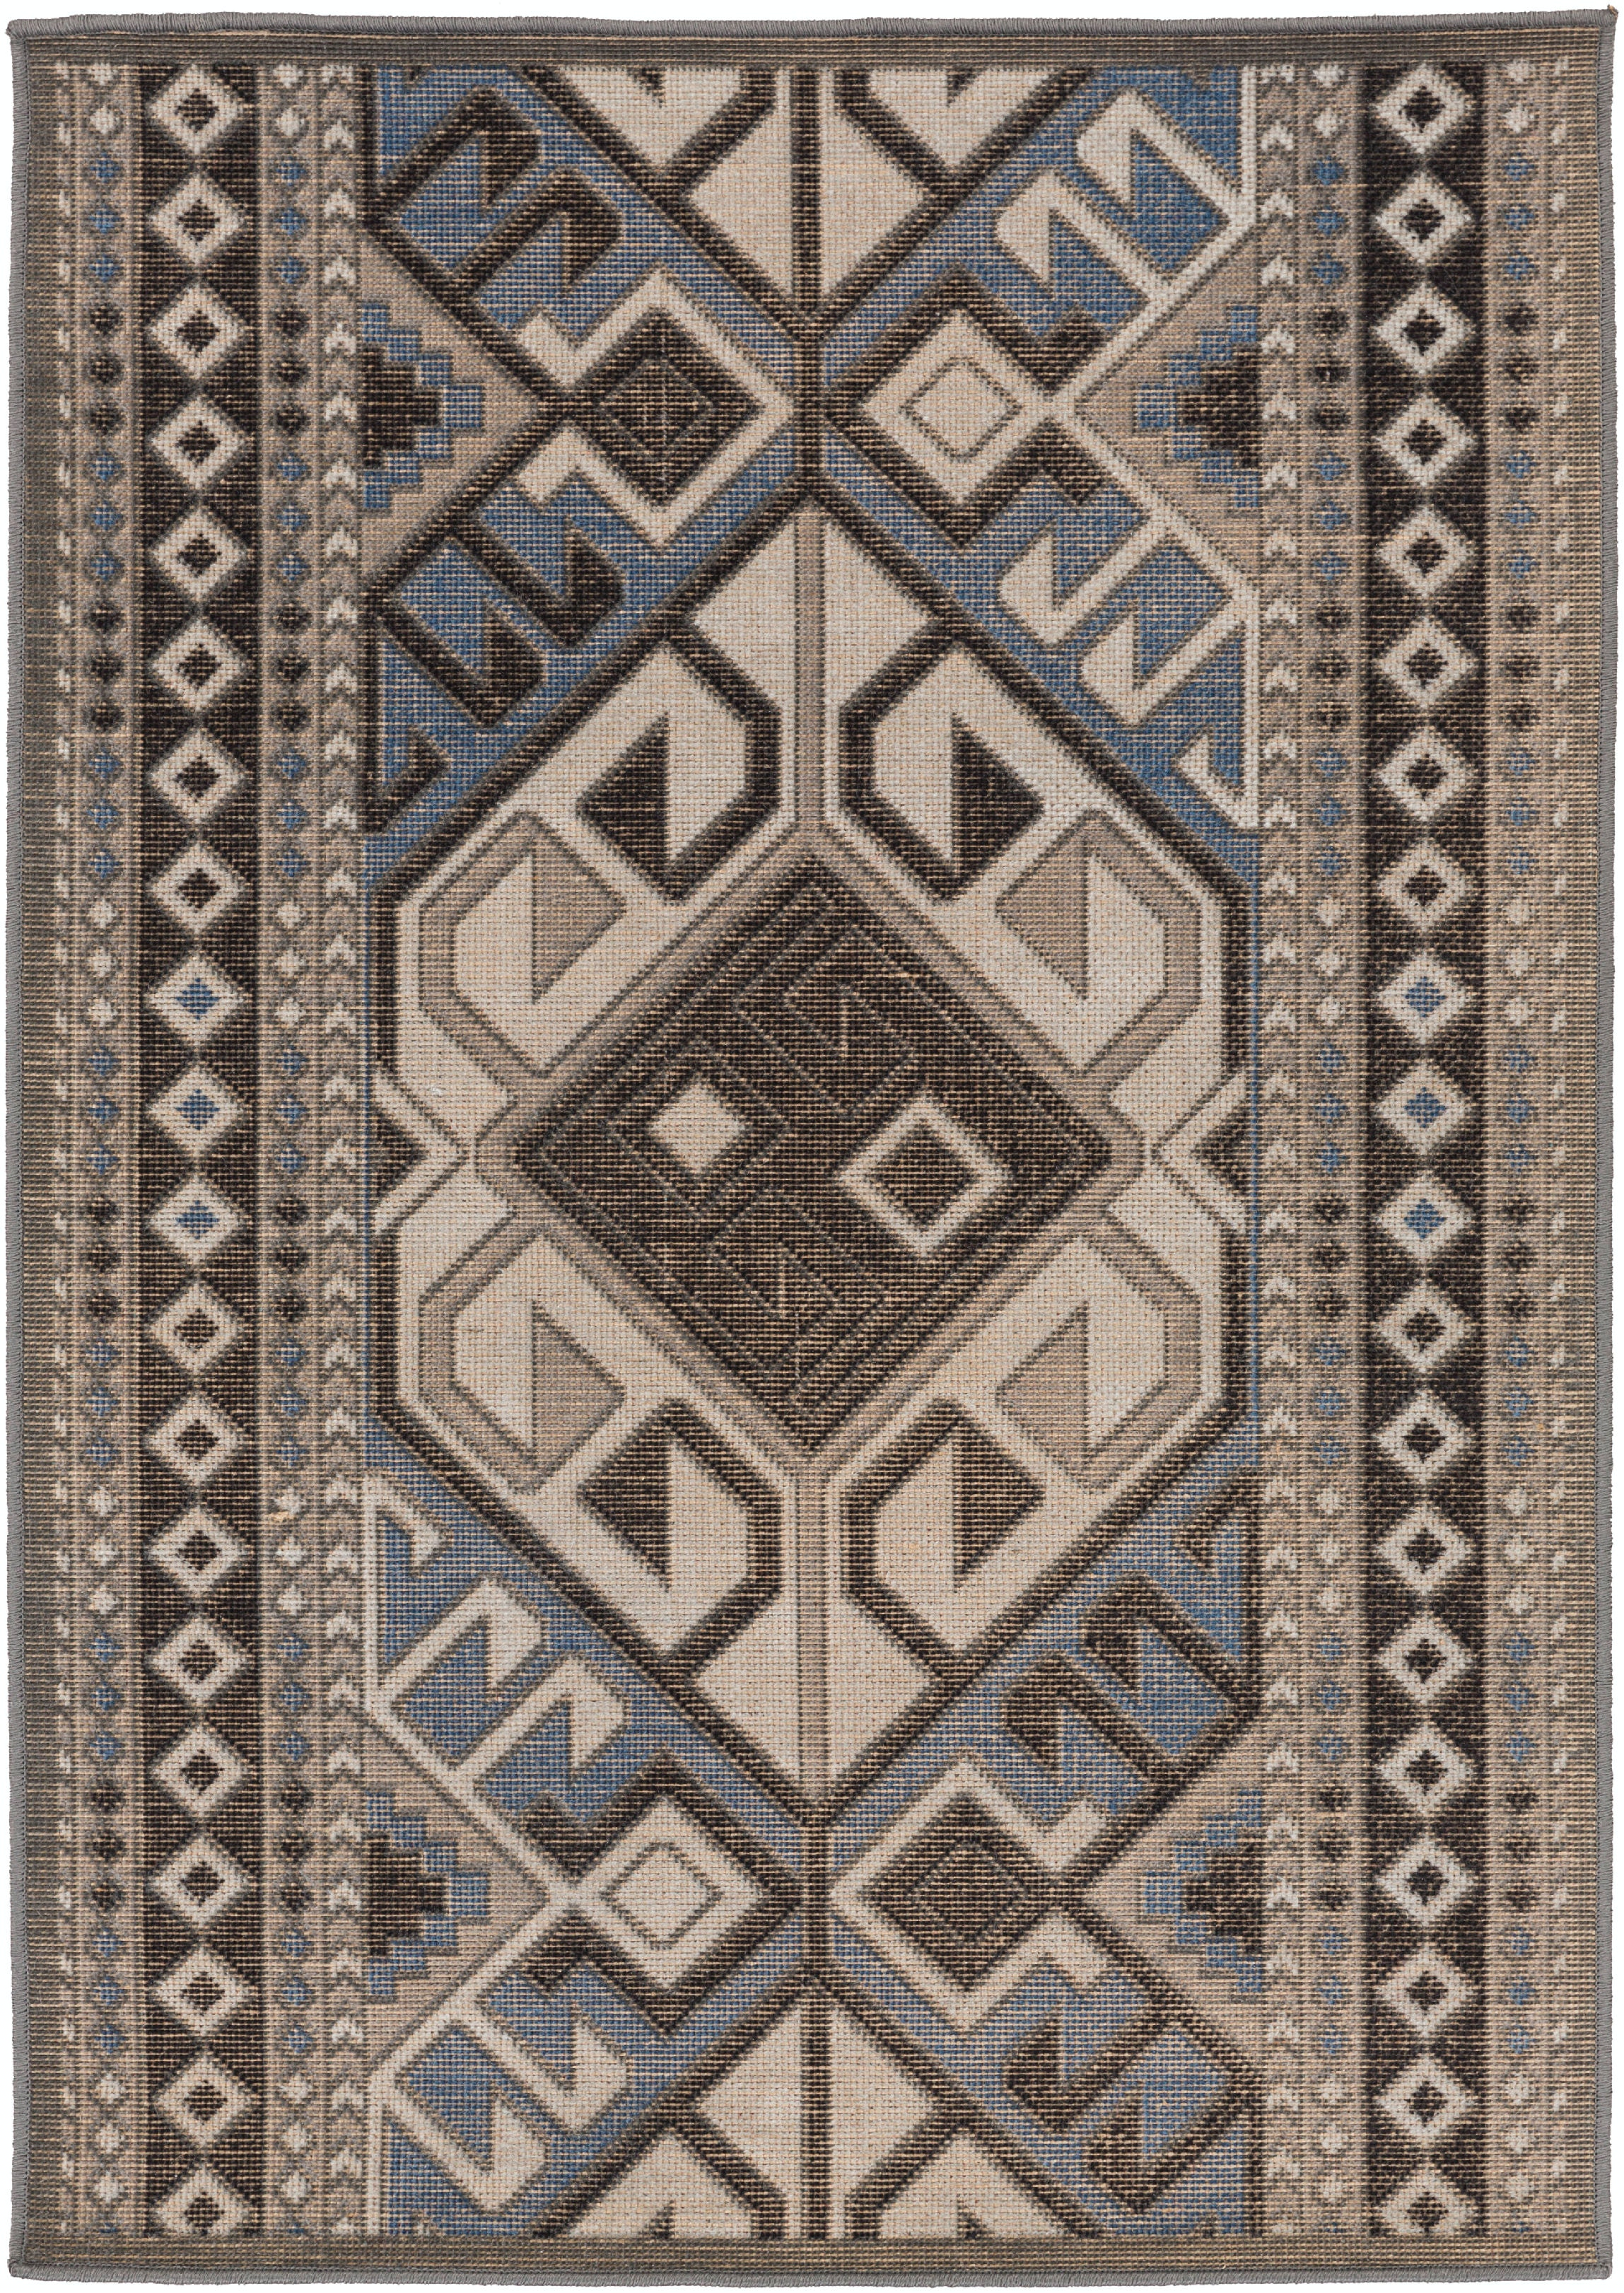 Surya Floor Coverings Mavrick 2 2 X 4 Area Rug Mav7003 224 Wells